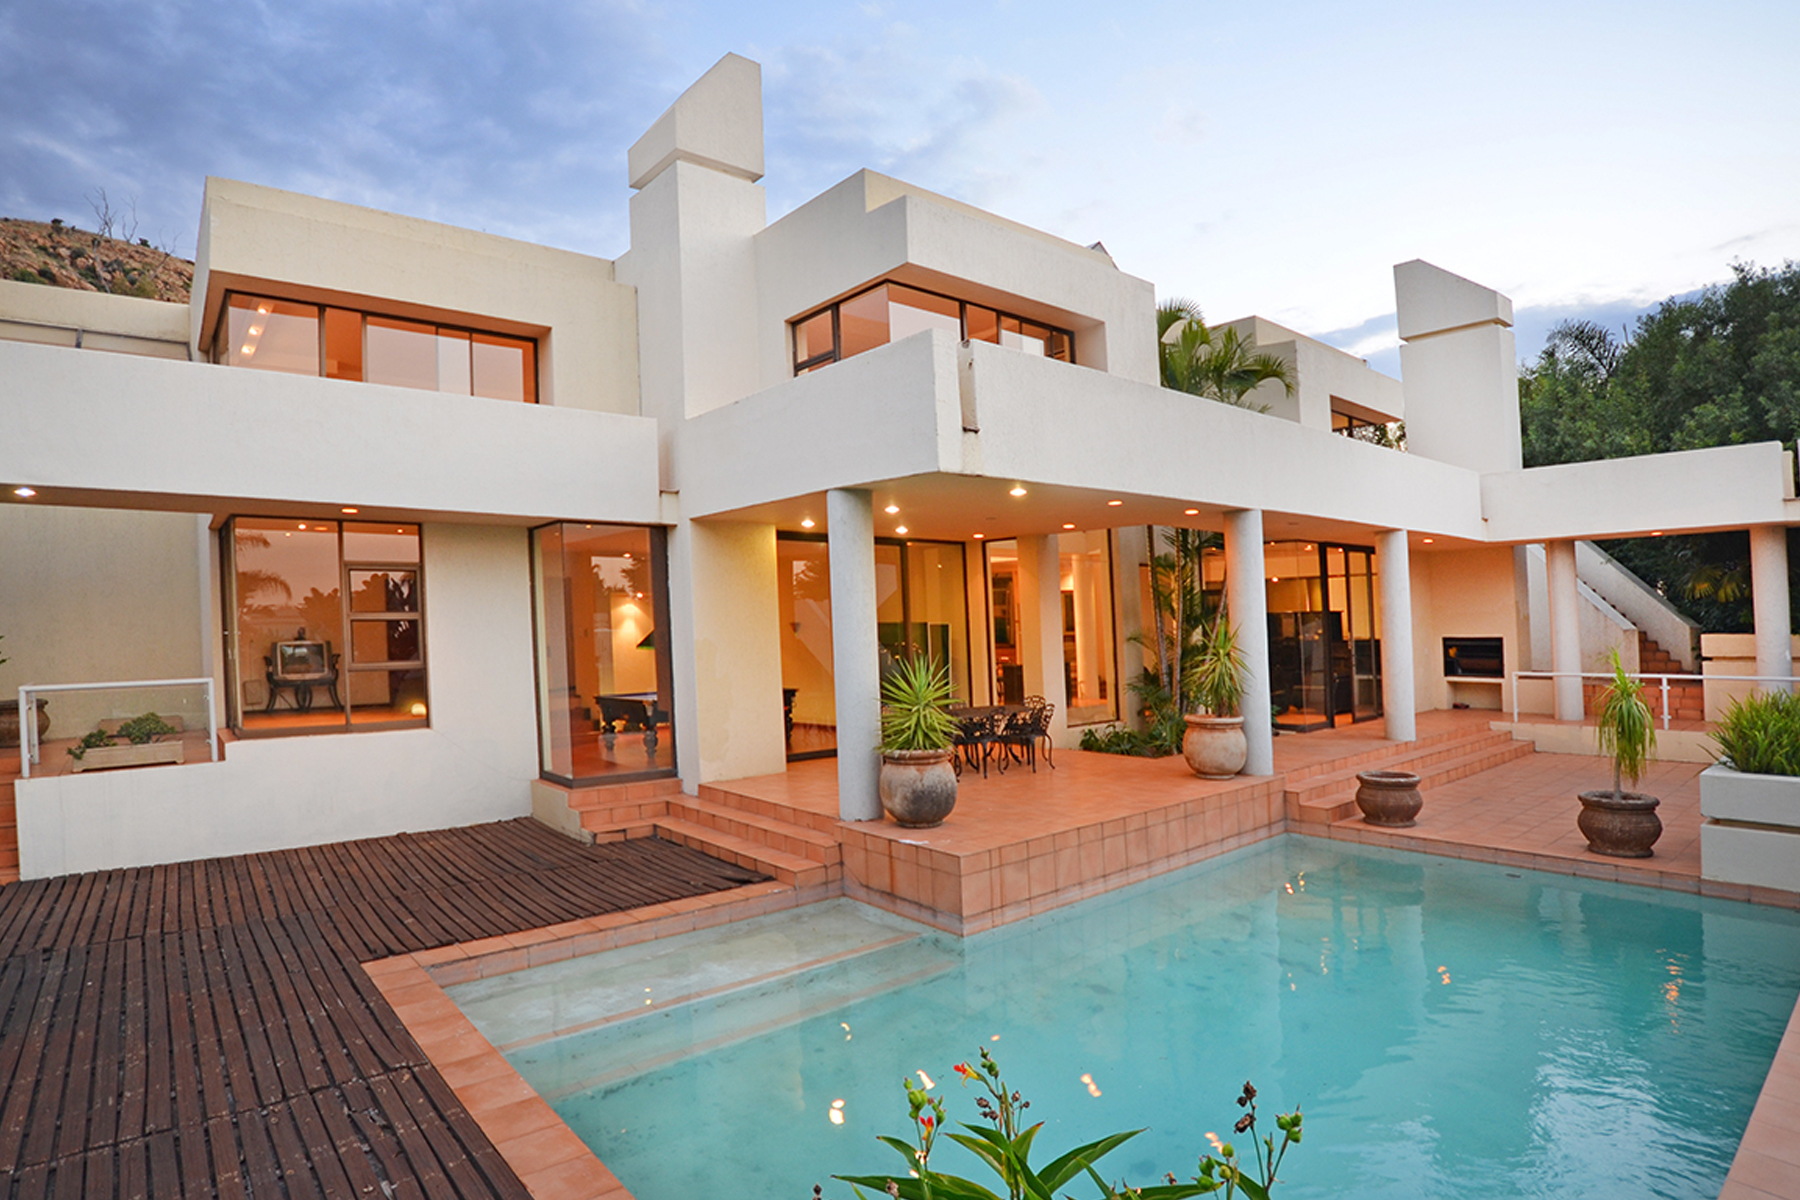 Single Family Home for Sale at Kloof Road Bedfordview Johannesburg, Gauteng, 2007 South Africa